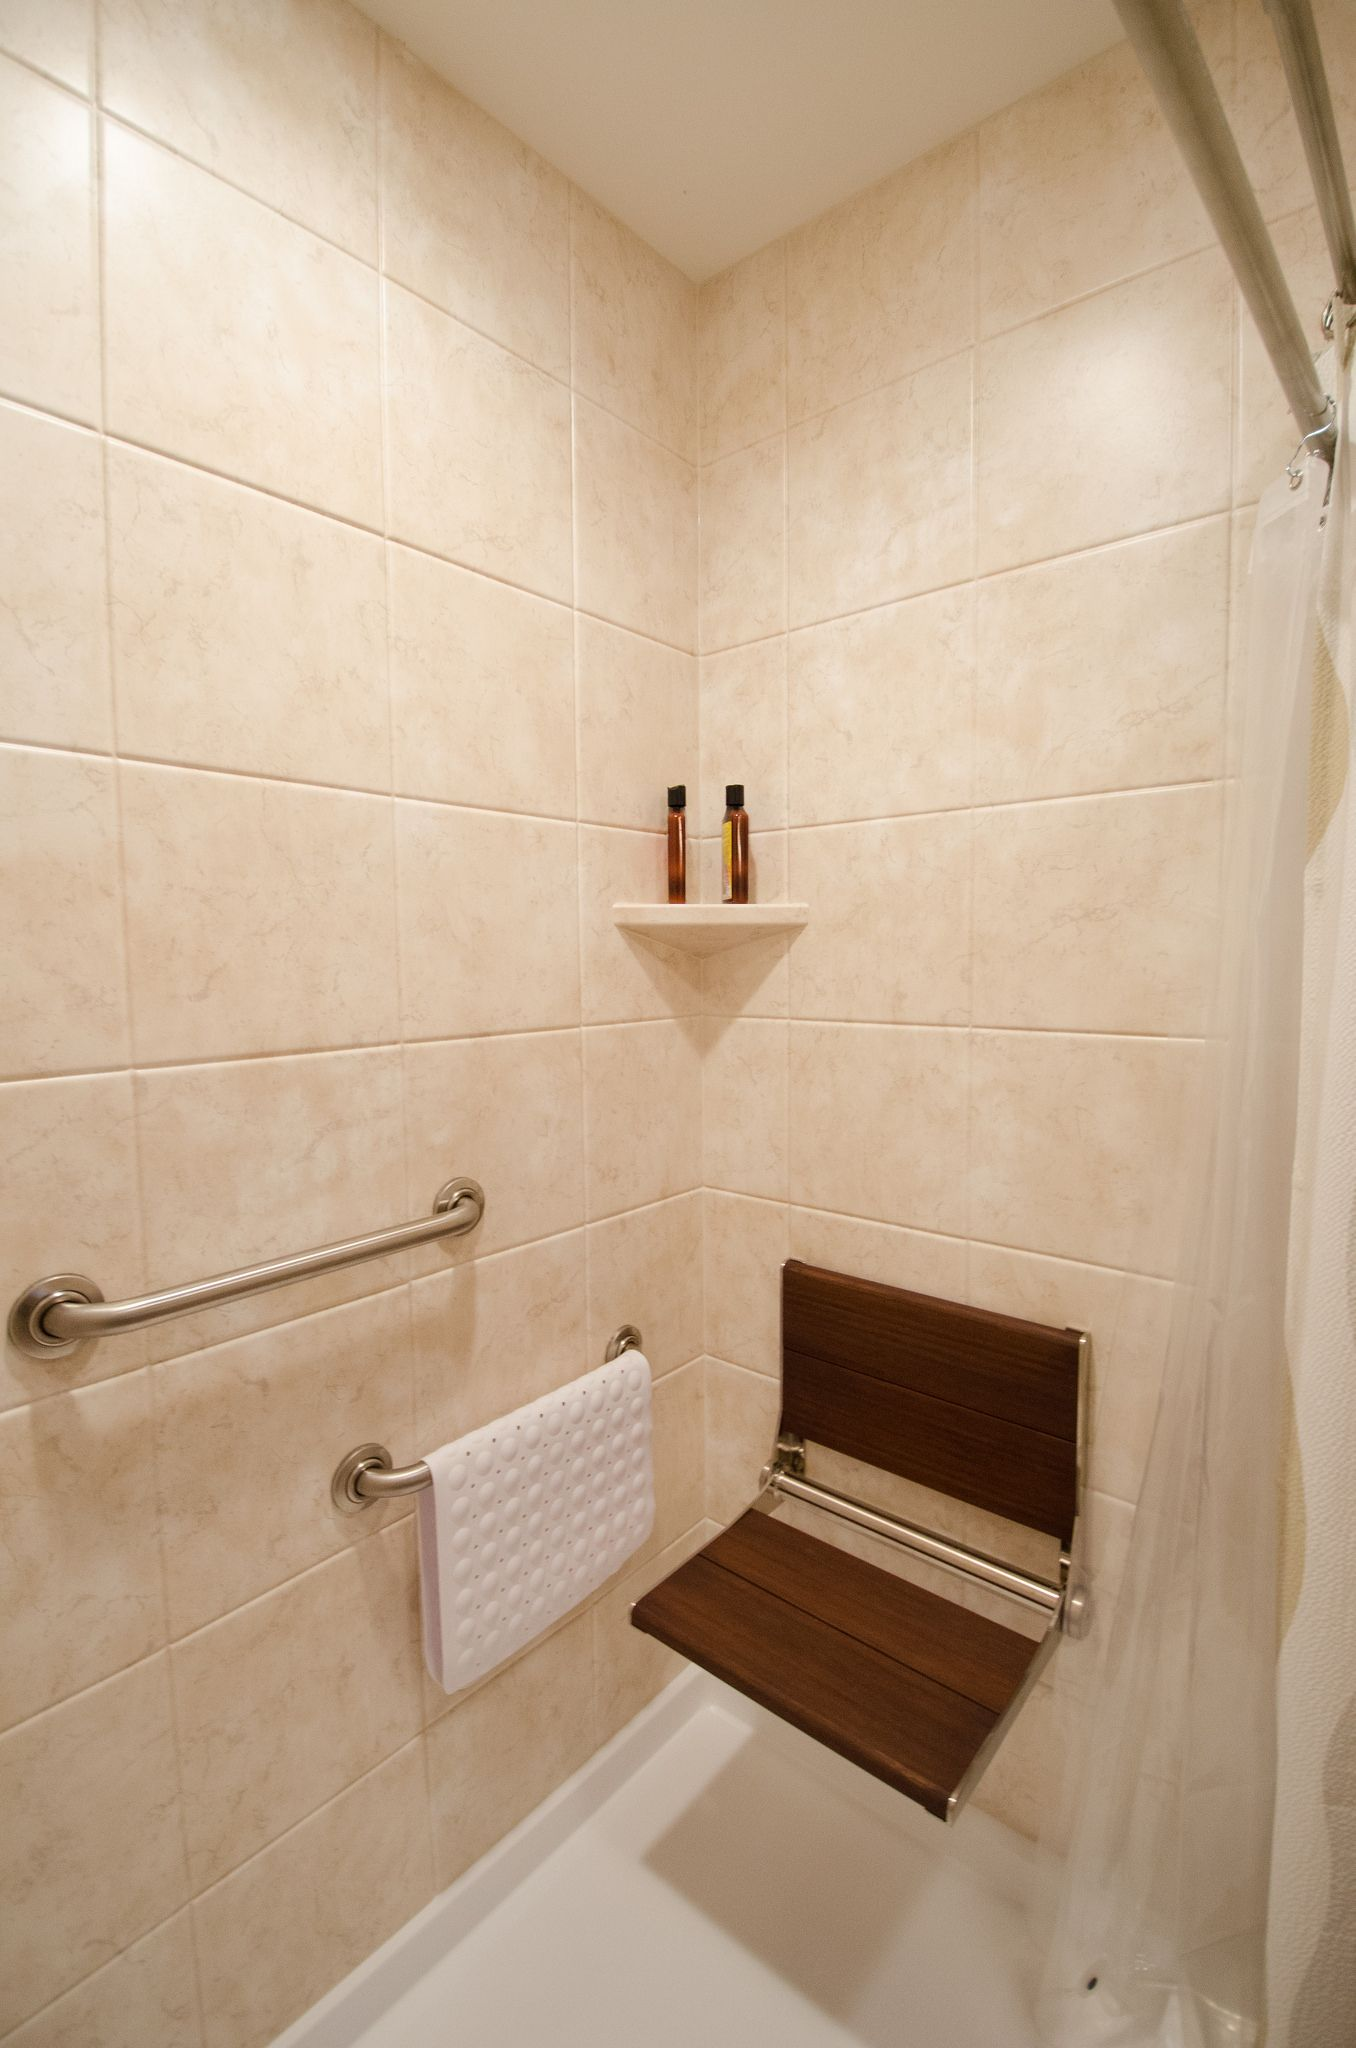 RH813- after-0169 | Shower seat, Shower rod and Grab bars